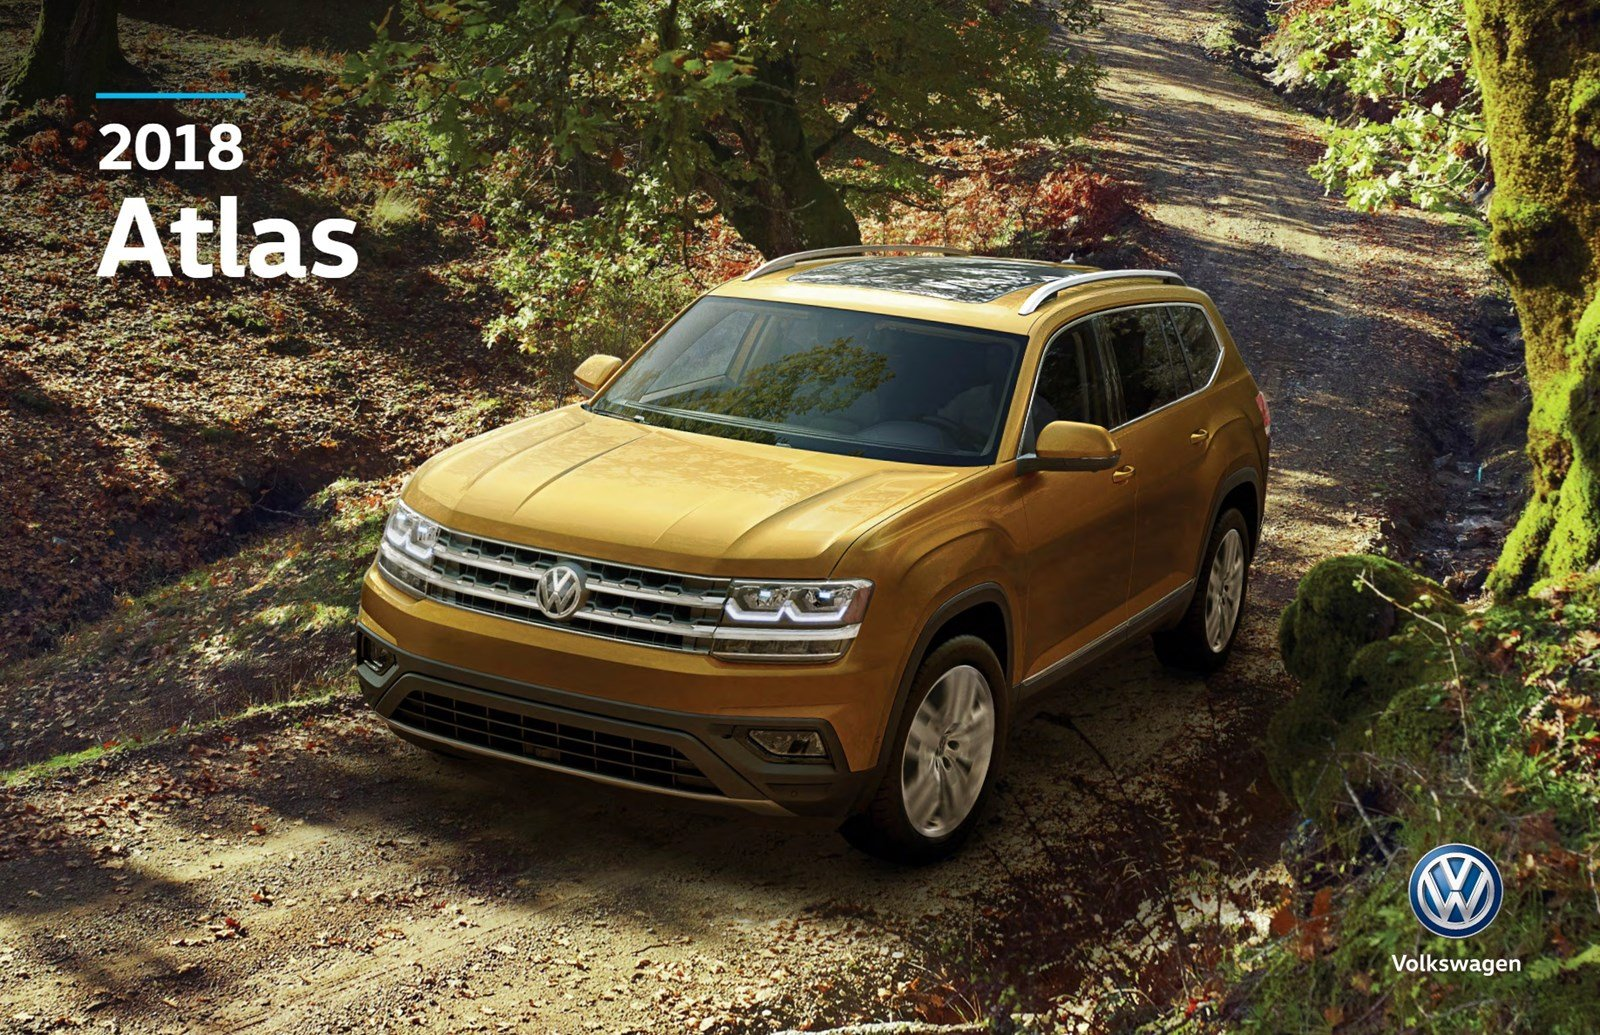 2018 Volkswagen Atlas Highline Awd W Leather Sunroof App Connect Hooking Up The Vw Column Switch For Signal Lights And Headlight Dimmer New Backup